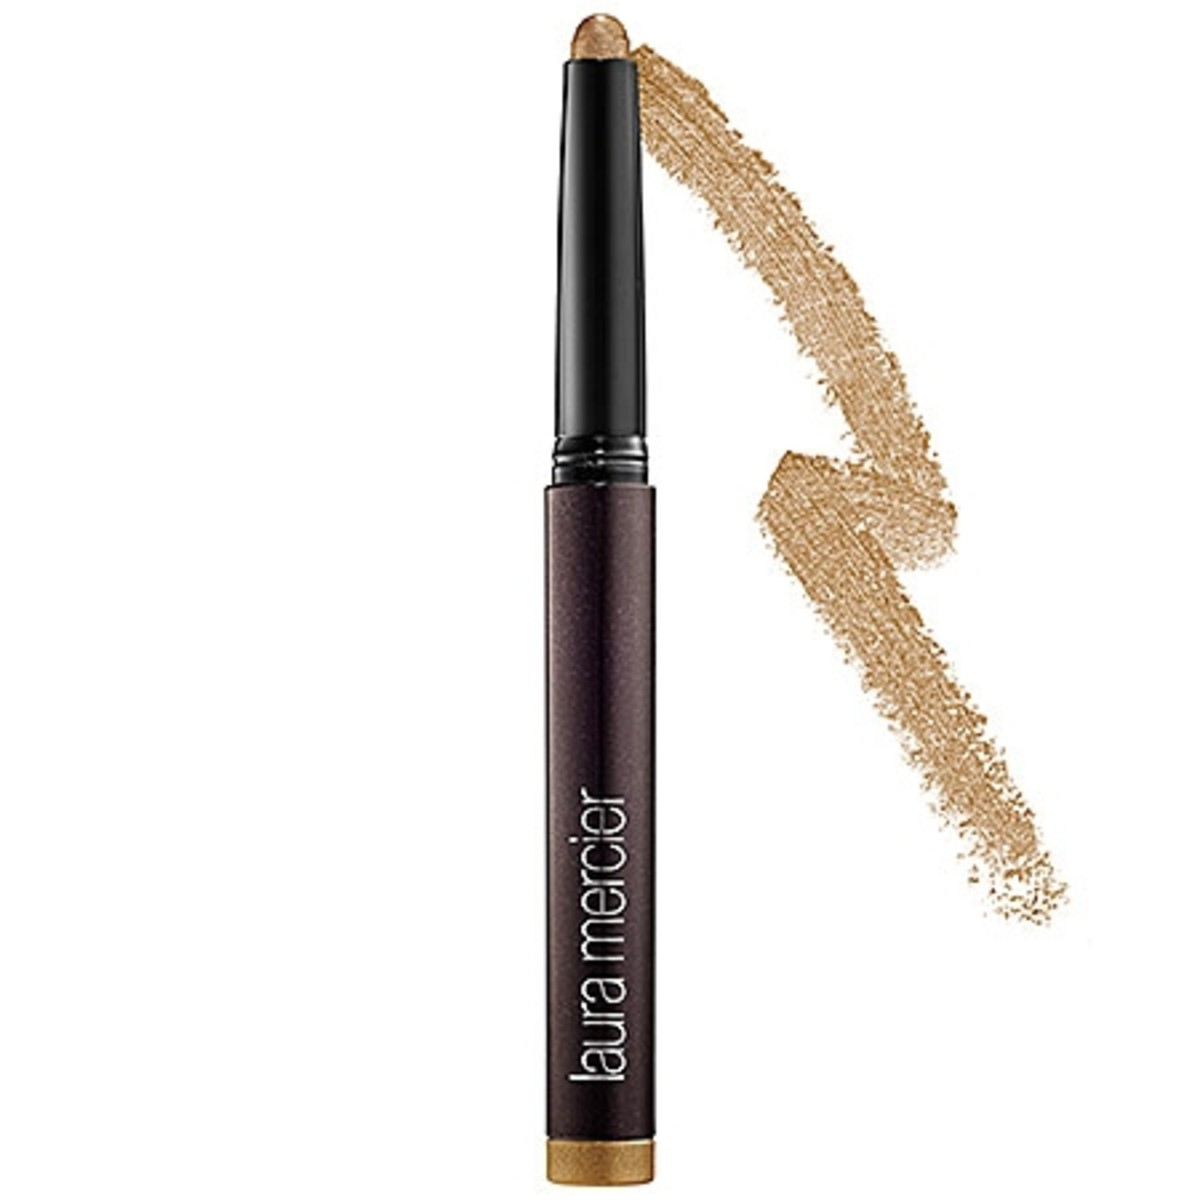 Laura Mercier Caviar Stick Eye Colour in Sand Glow